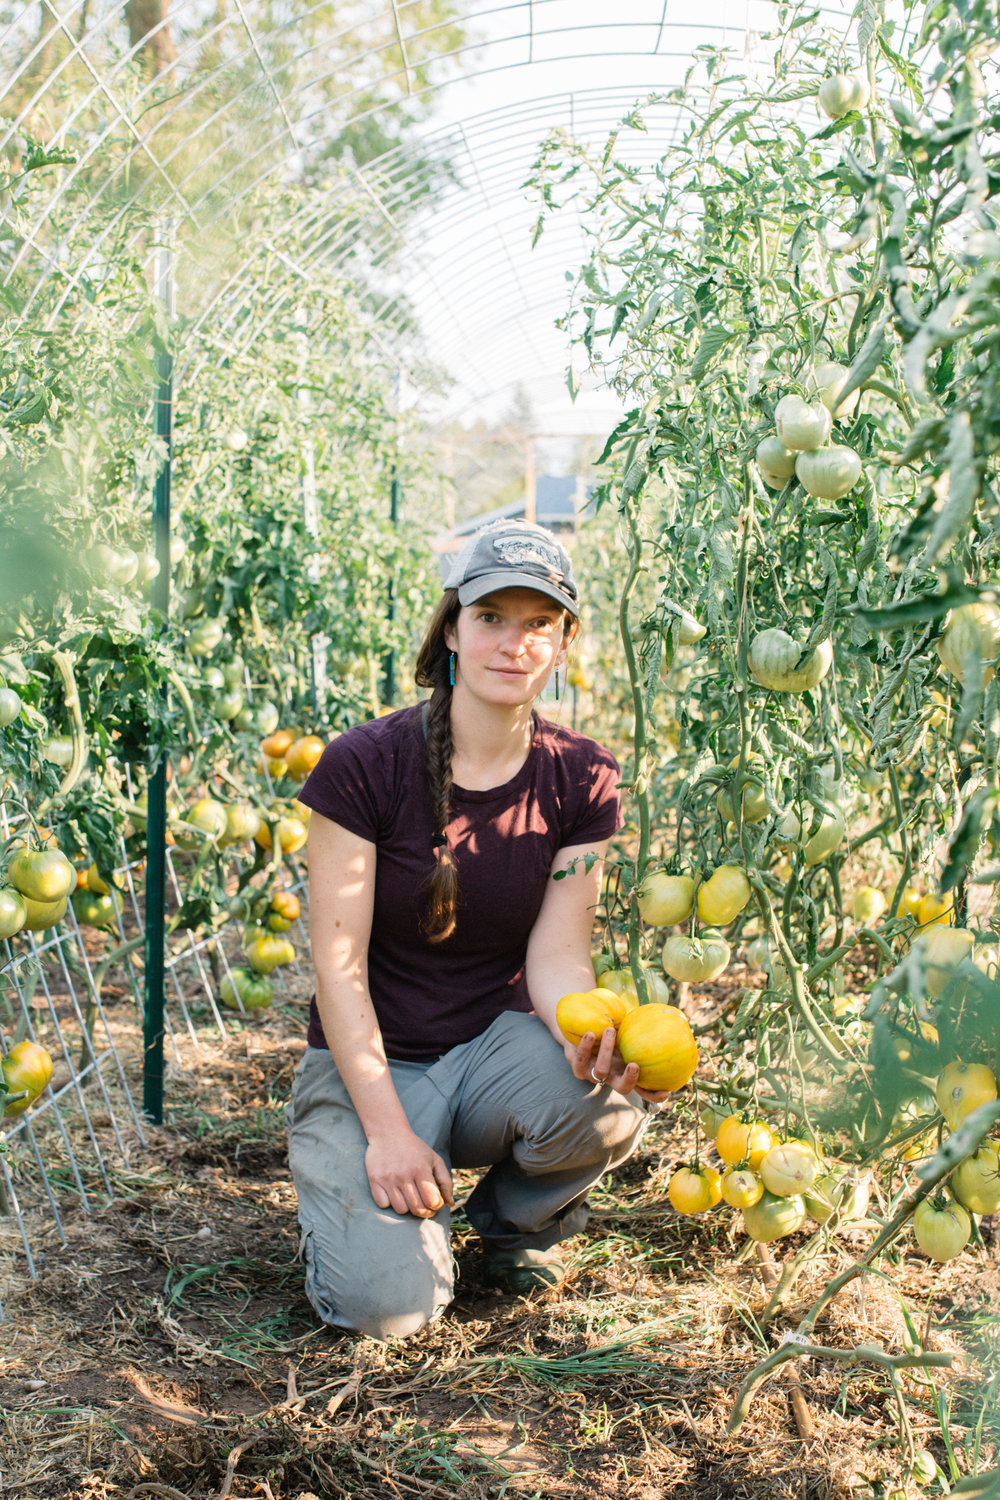 Stasia Orkwiszewski, manager of the University of Montana's newly-planted South Ave. Garden, holds yellow heirloom tomatoes under a tomato trellis. The tomatoes were later sent to UM's Food Zoo for students to eat as part of the university's Farm to Table program.